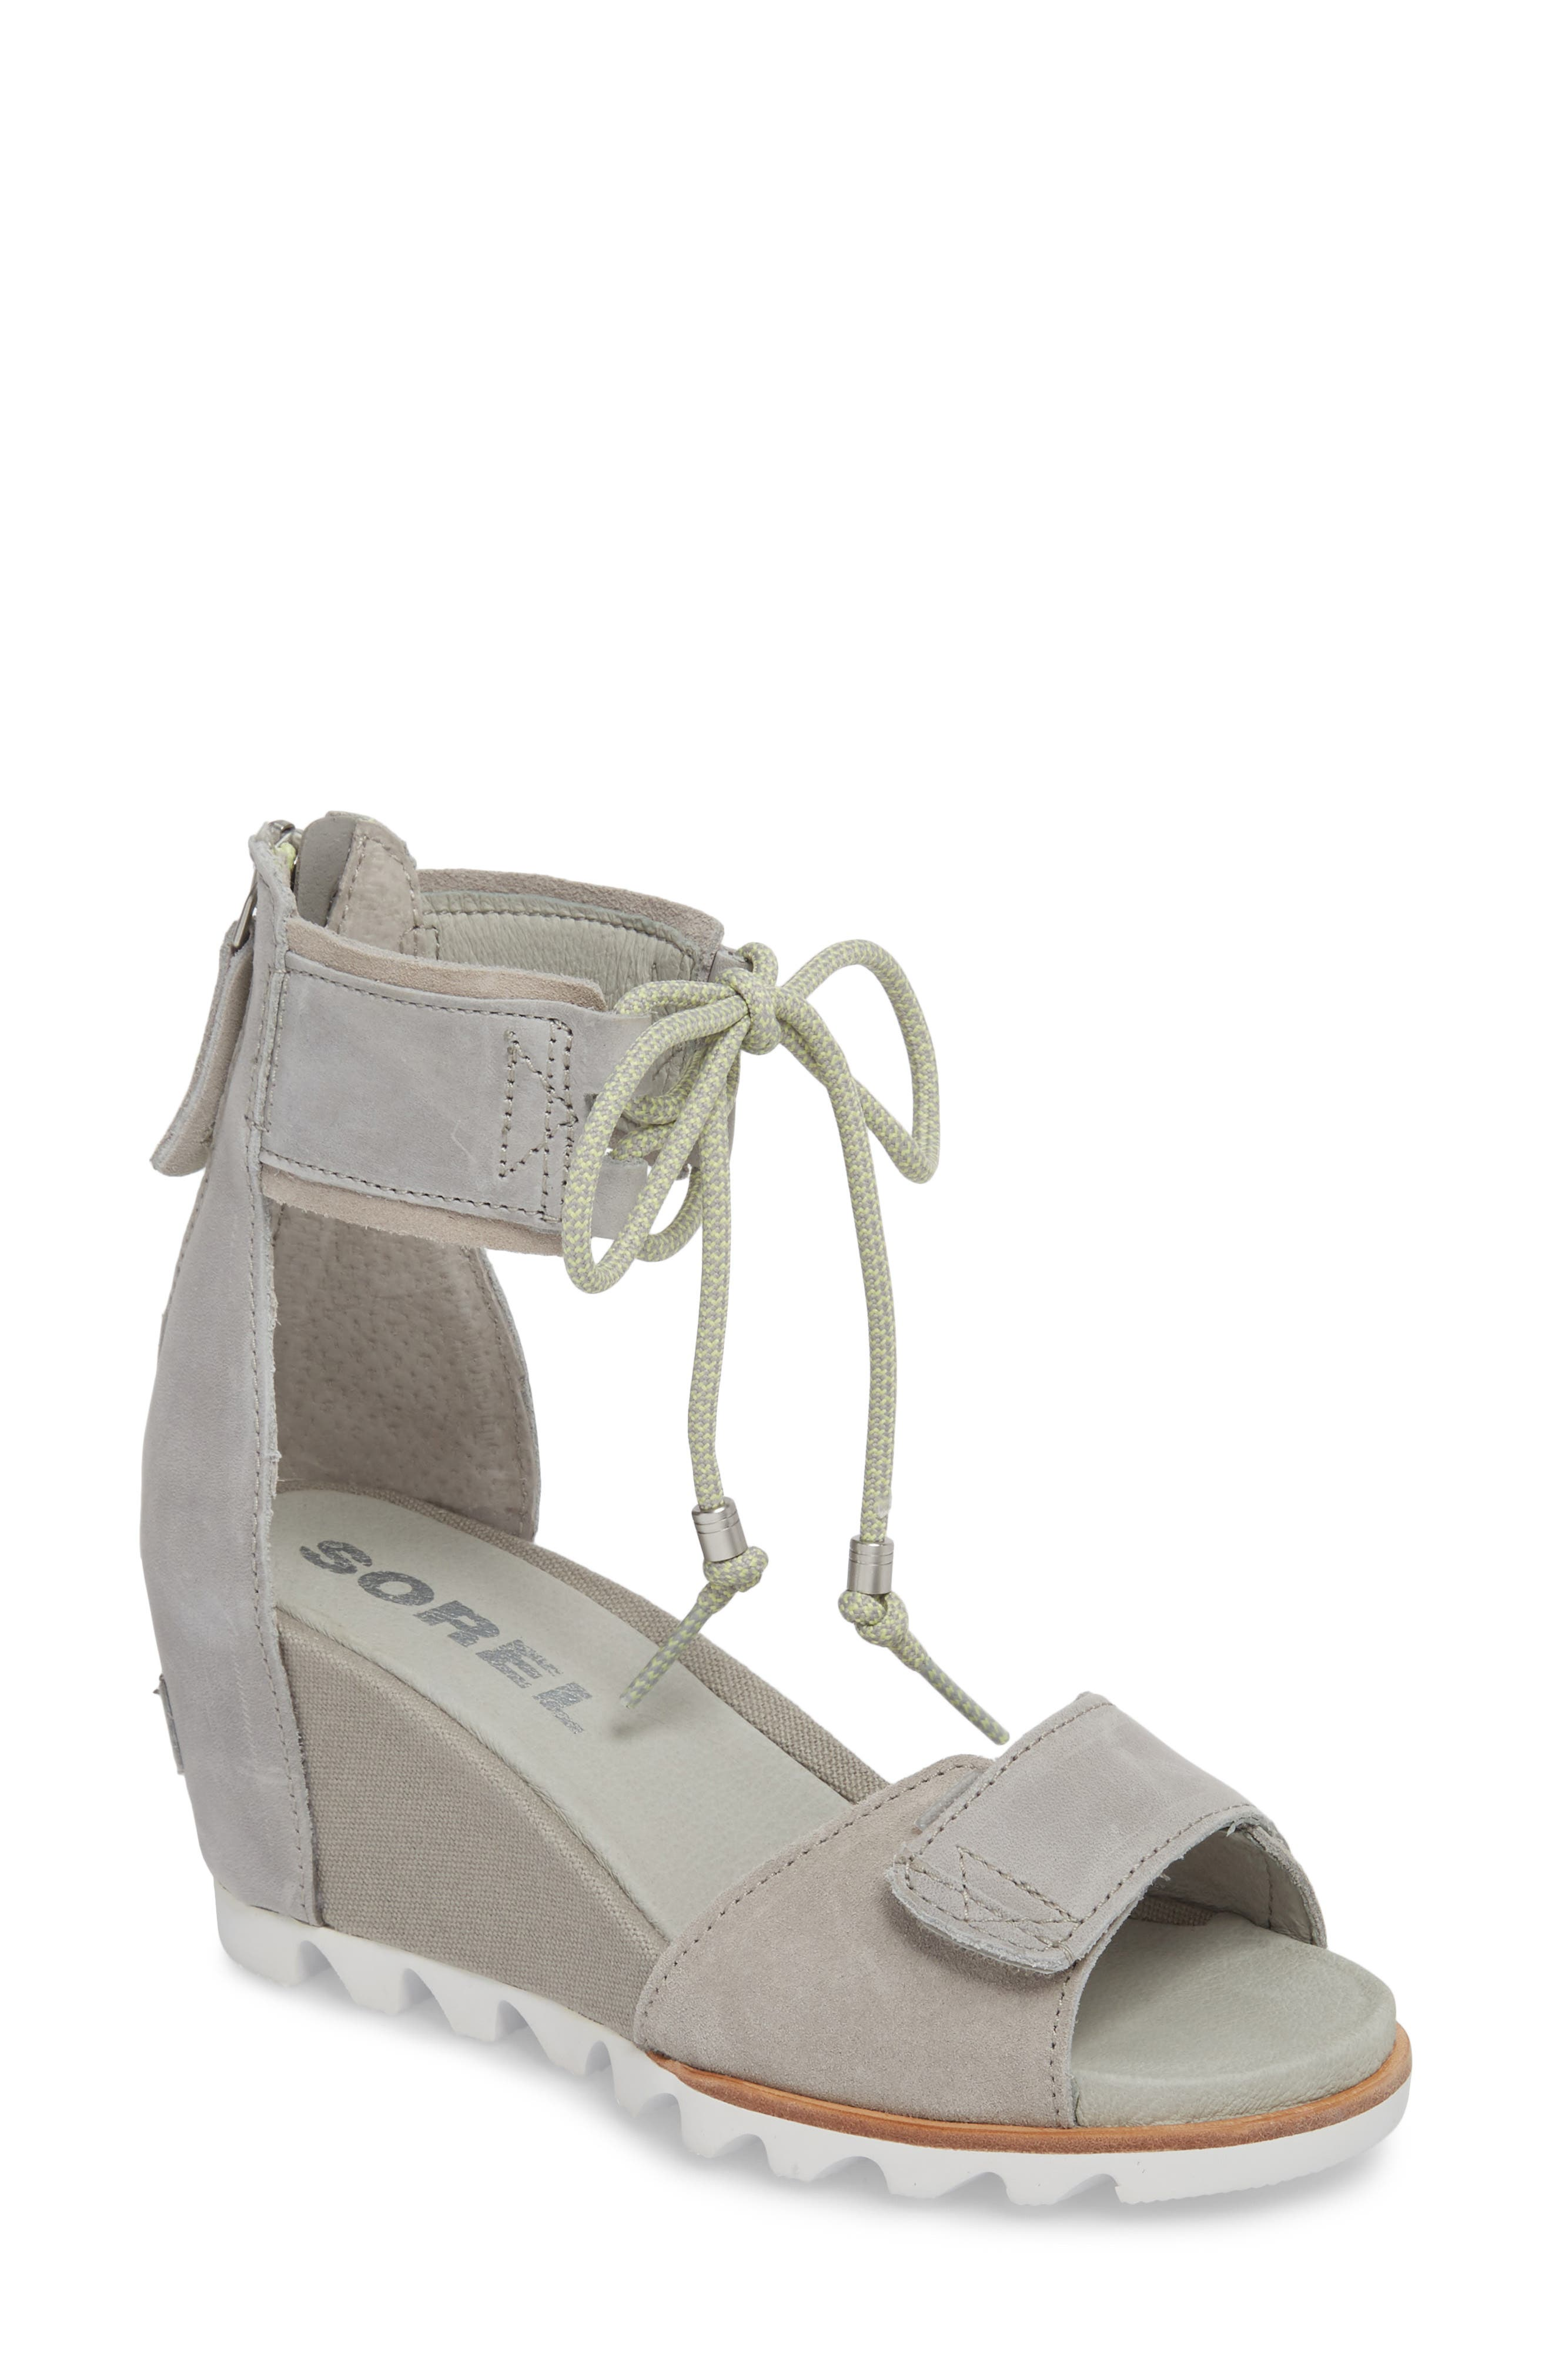 Joanie Cuff Wedge Sandal,                         Main,                         color, Dove